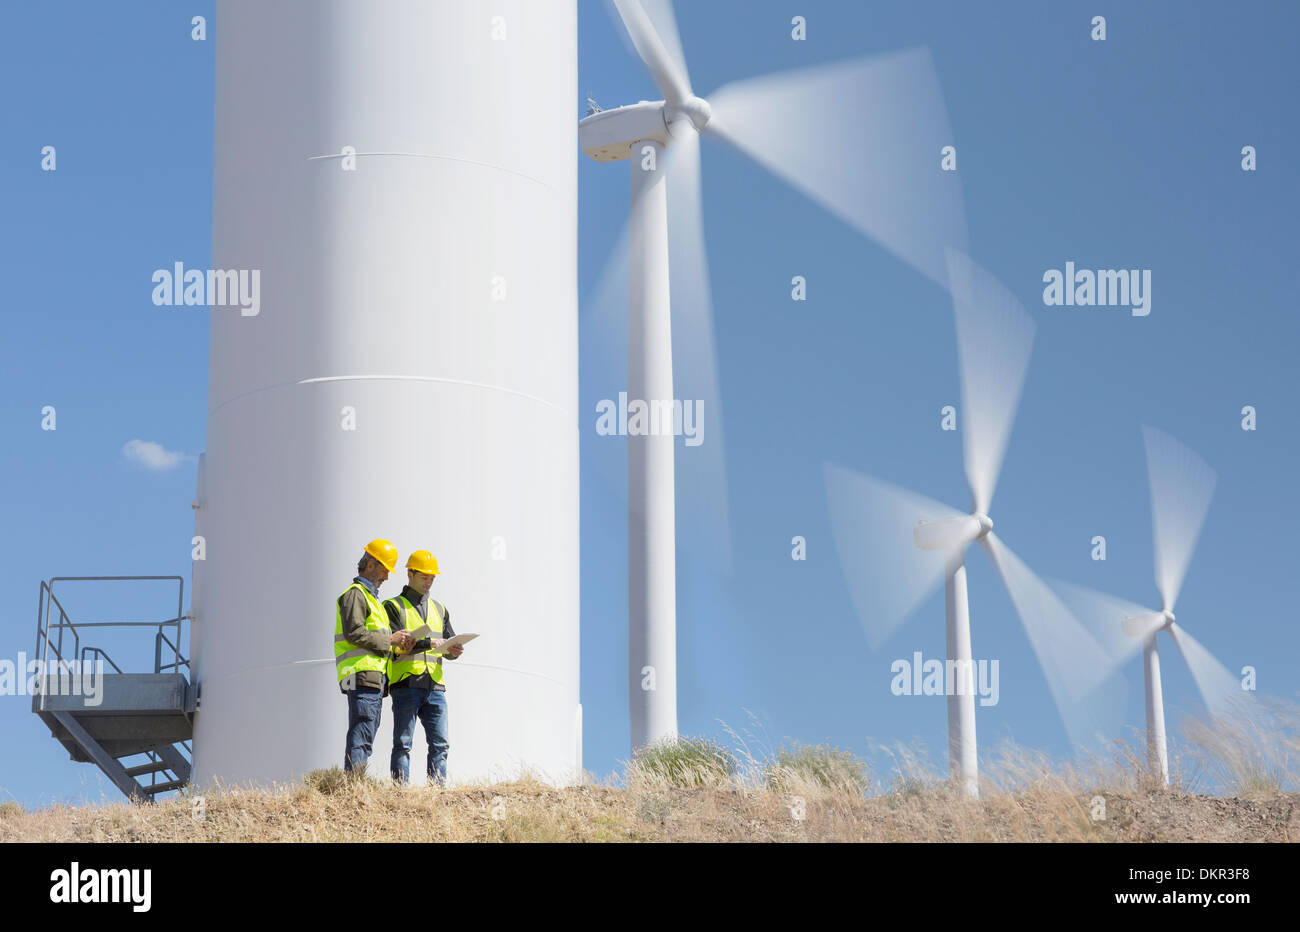 Workers talking by wind turbines in rural landscape - Stock Image